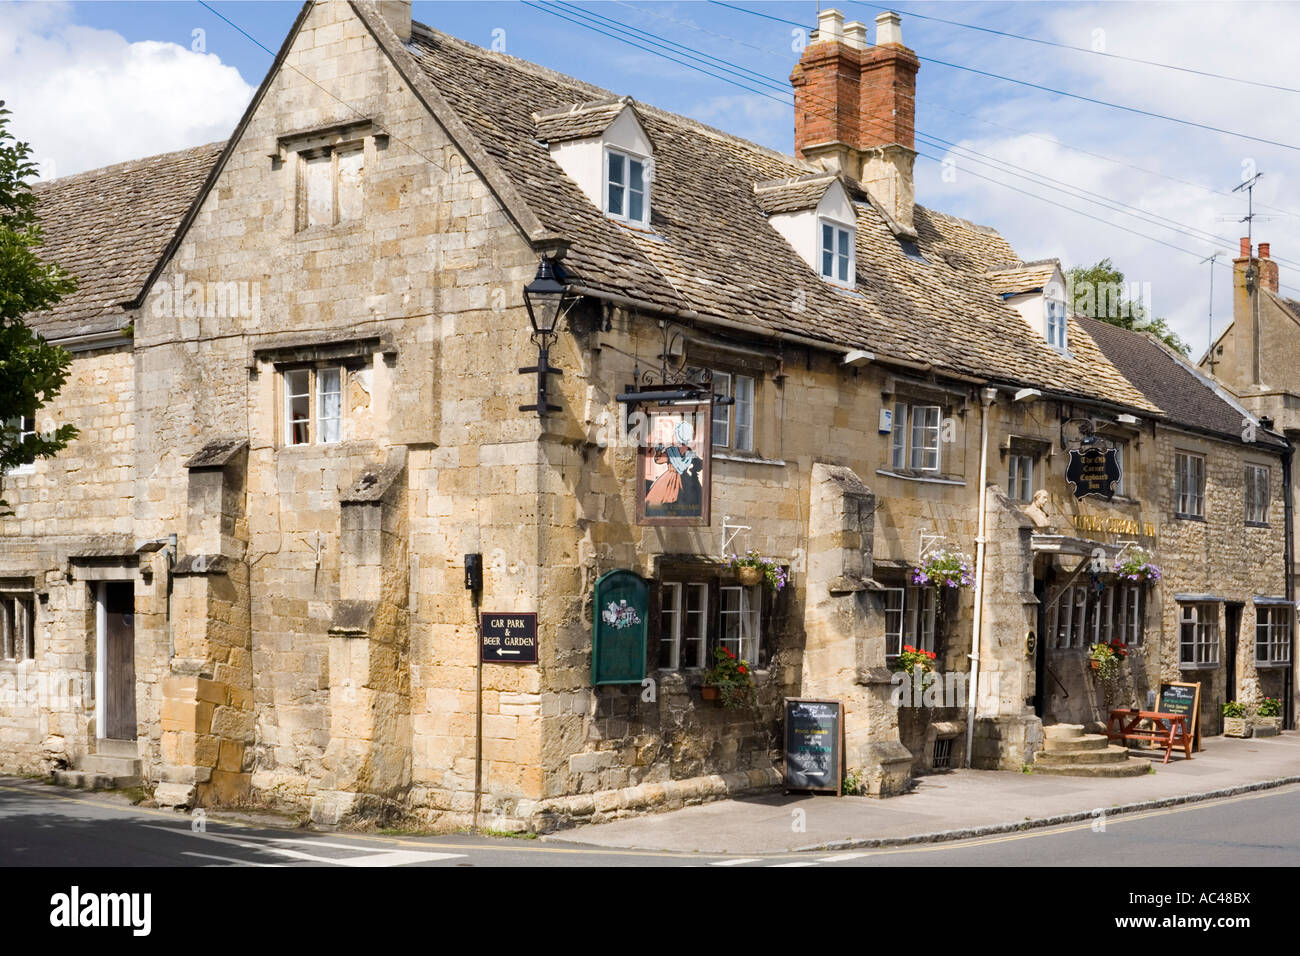 The Old Corner Cupboard Inn in the Cotswold town of Winchcombe Gloucestershire - Stock Image